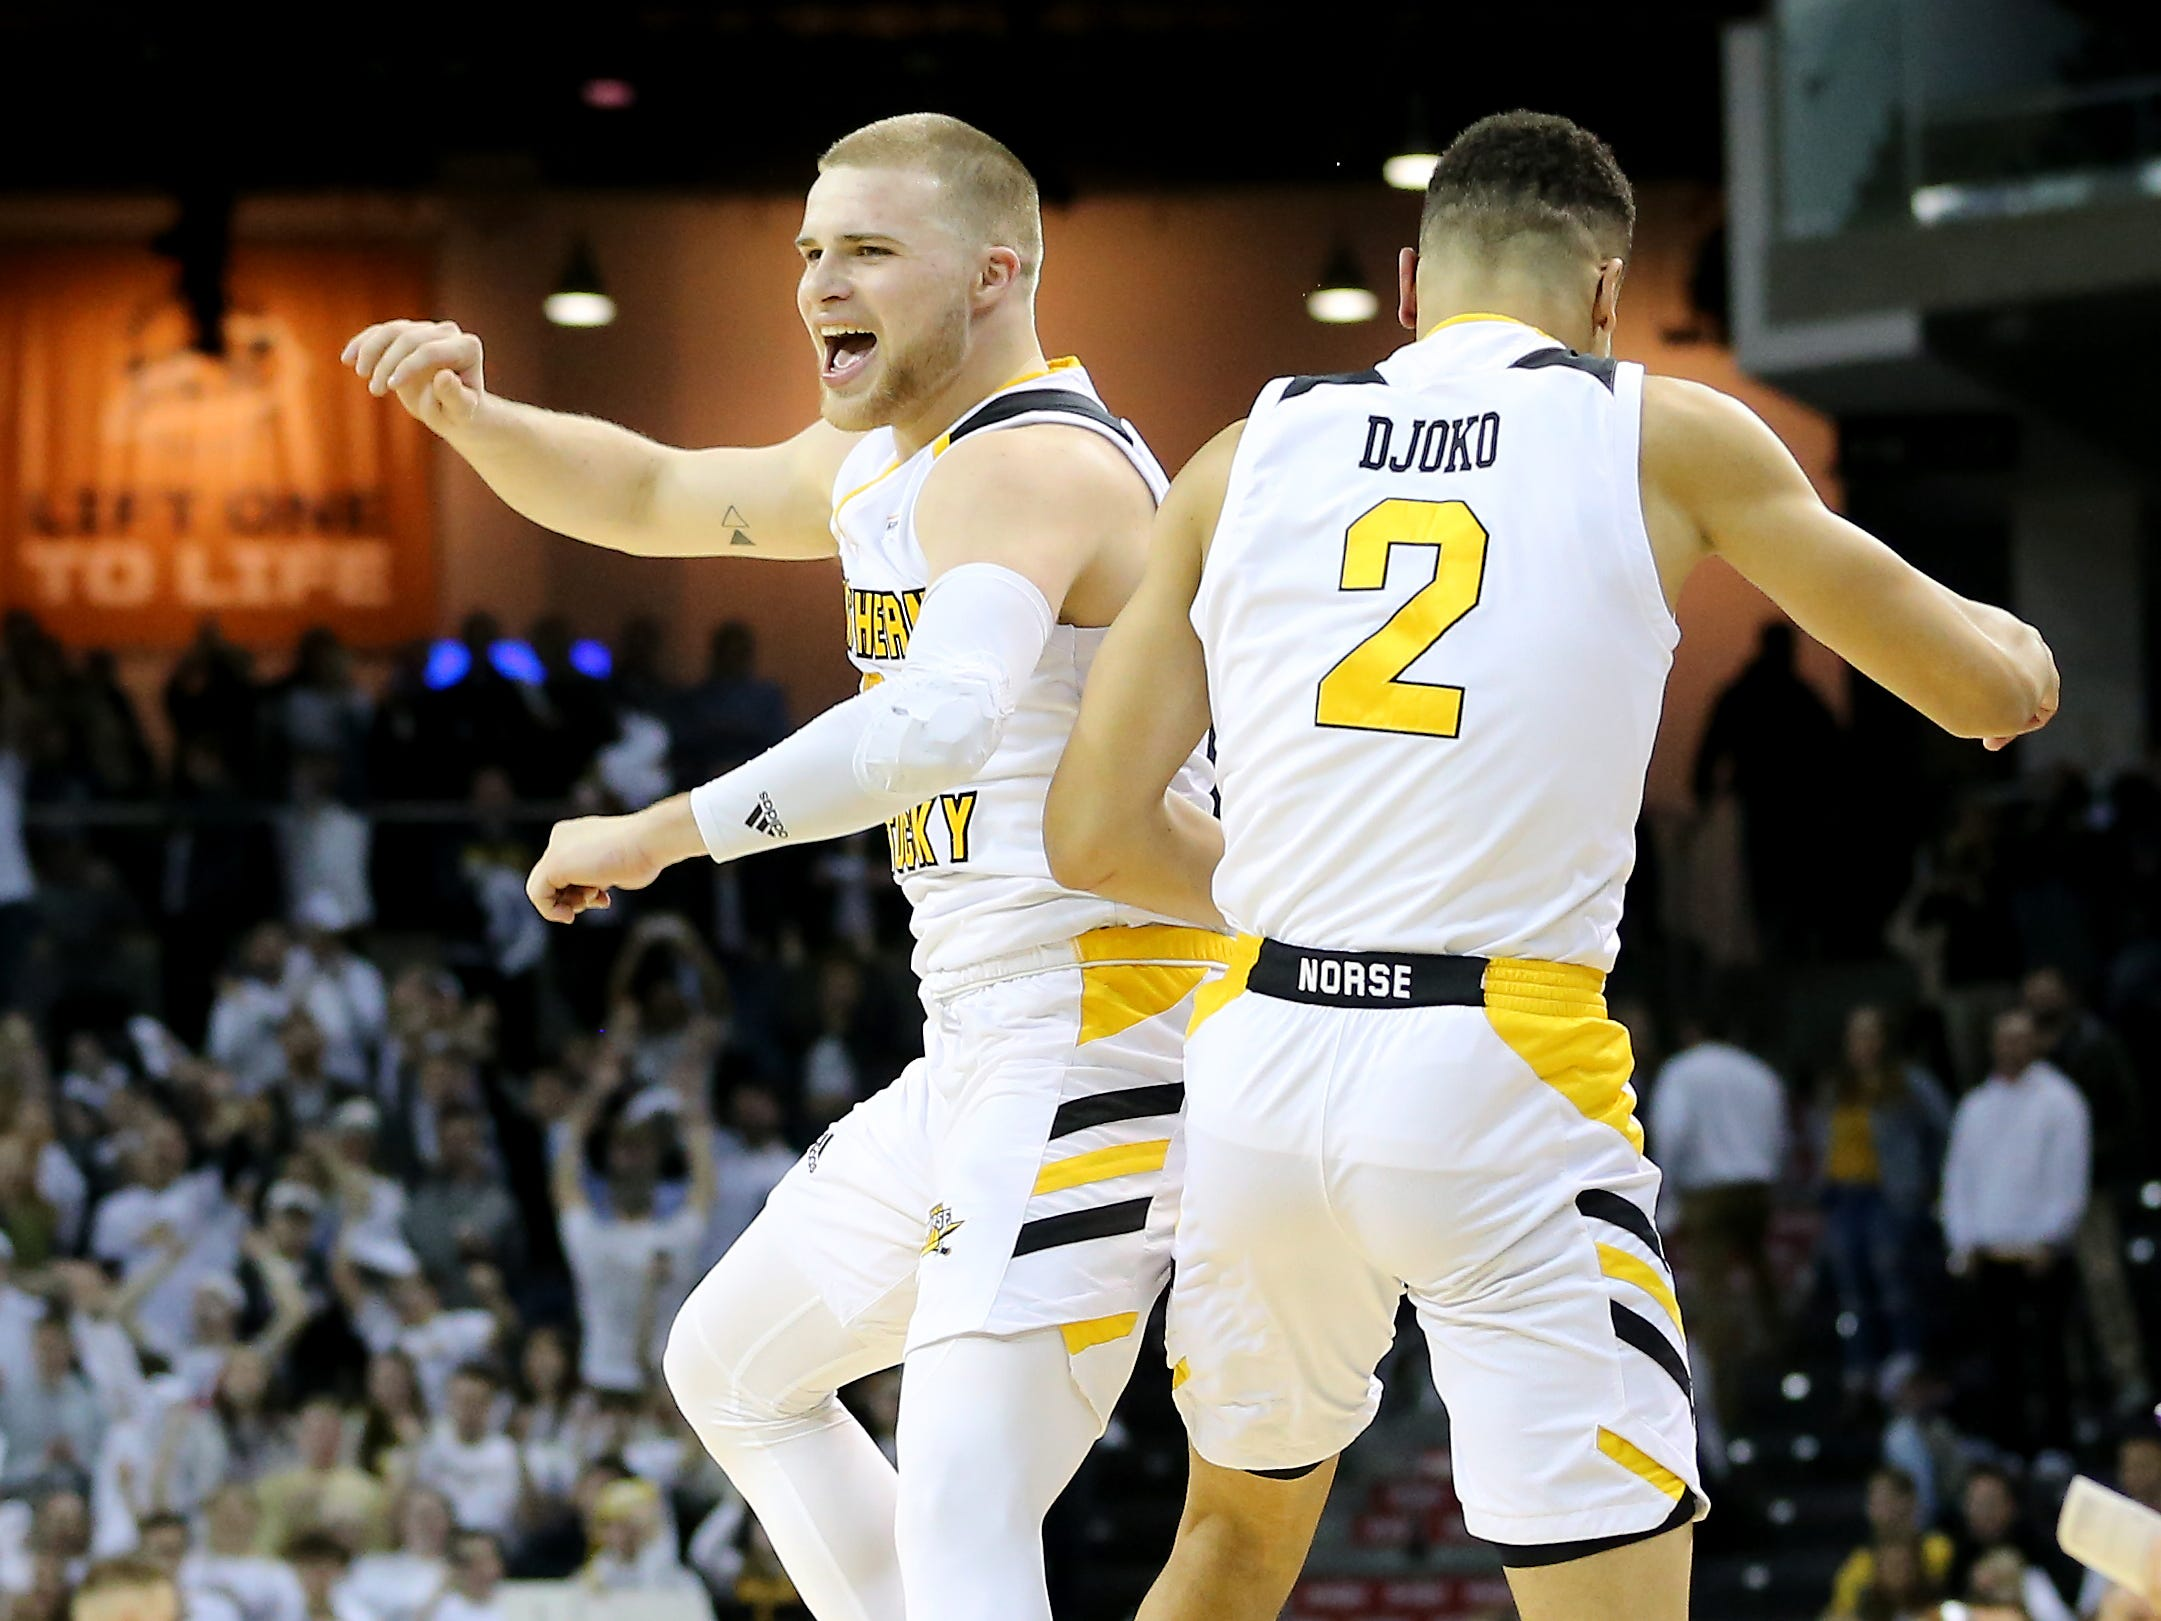 Northern Kentucky Norse guard Tyler Sharpe (15) and Northern Kentucky Norse guard Paul Djoko (2) celebrate the win against the Wright State Raiders, Friday, Jan. 11, 2019, at BB&T Arena in Highland Heights, Ky.